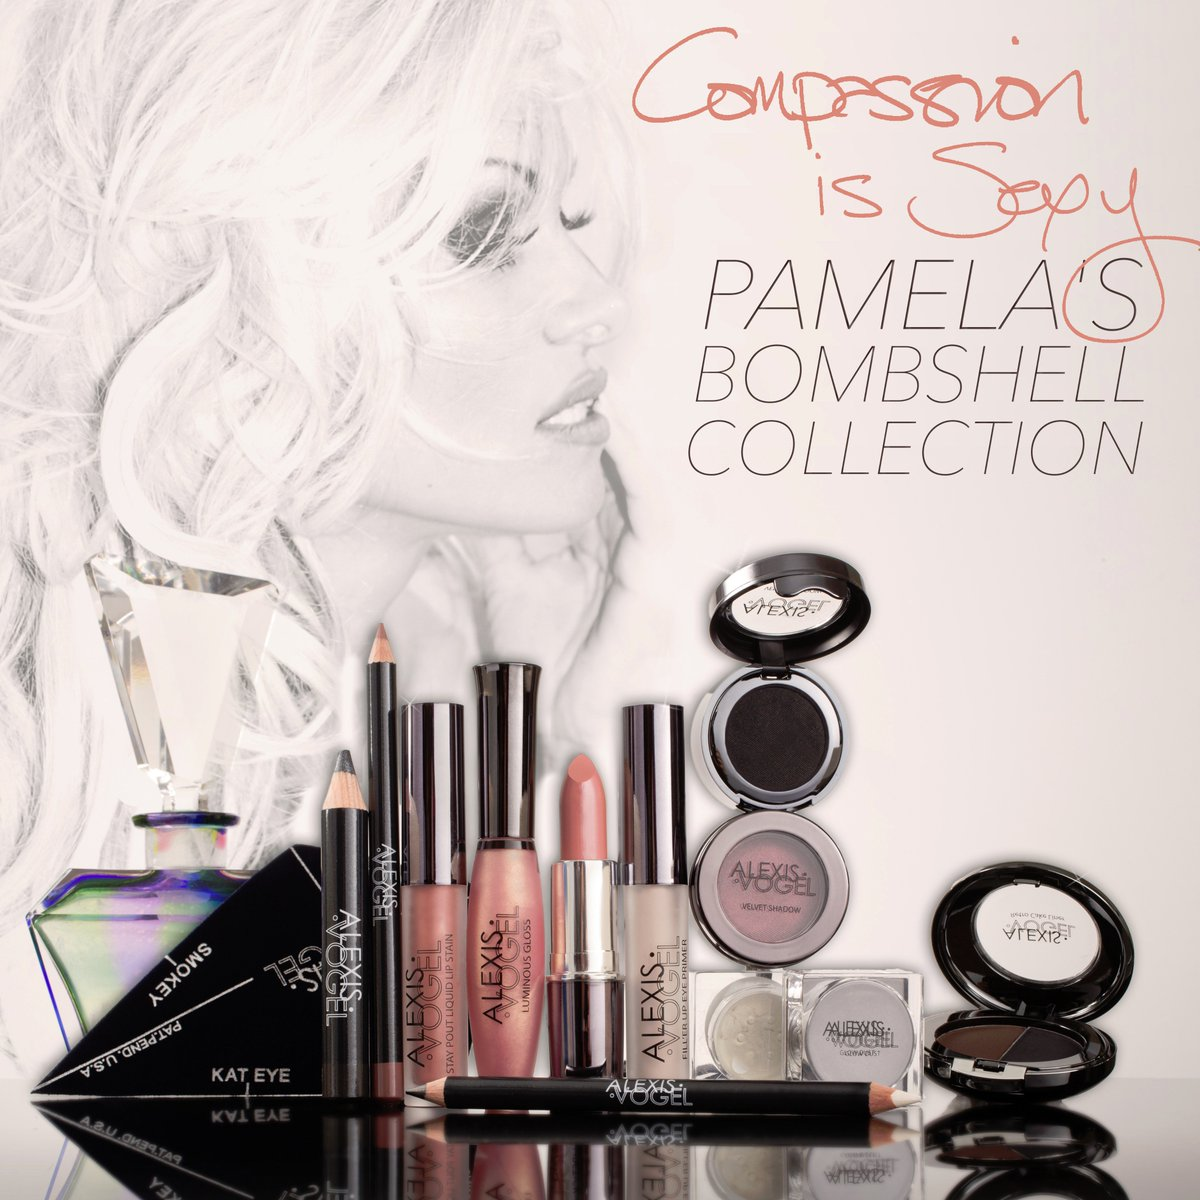 RT @alexisvmakeup: #Live# New Pamela's Bombshell Collection @alexisvmakeup portion of proceeds for the @pamfoundation !Valentine'sDay<3 htt…